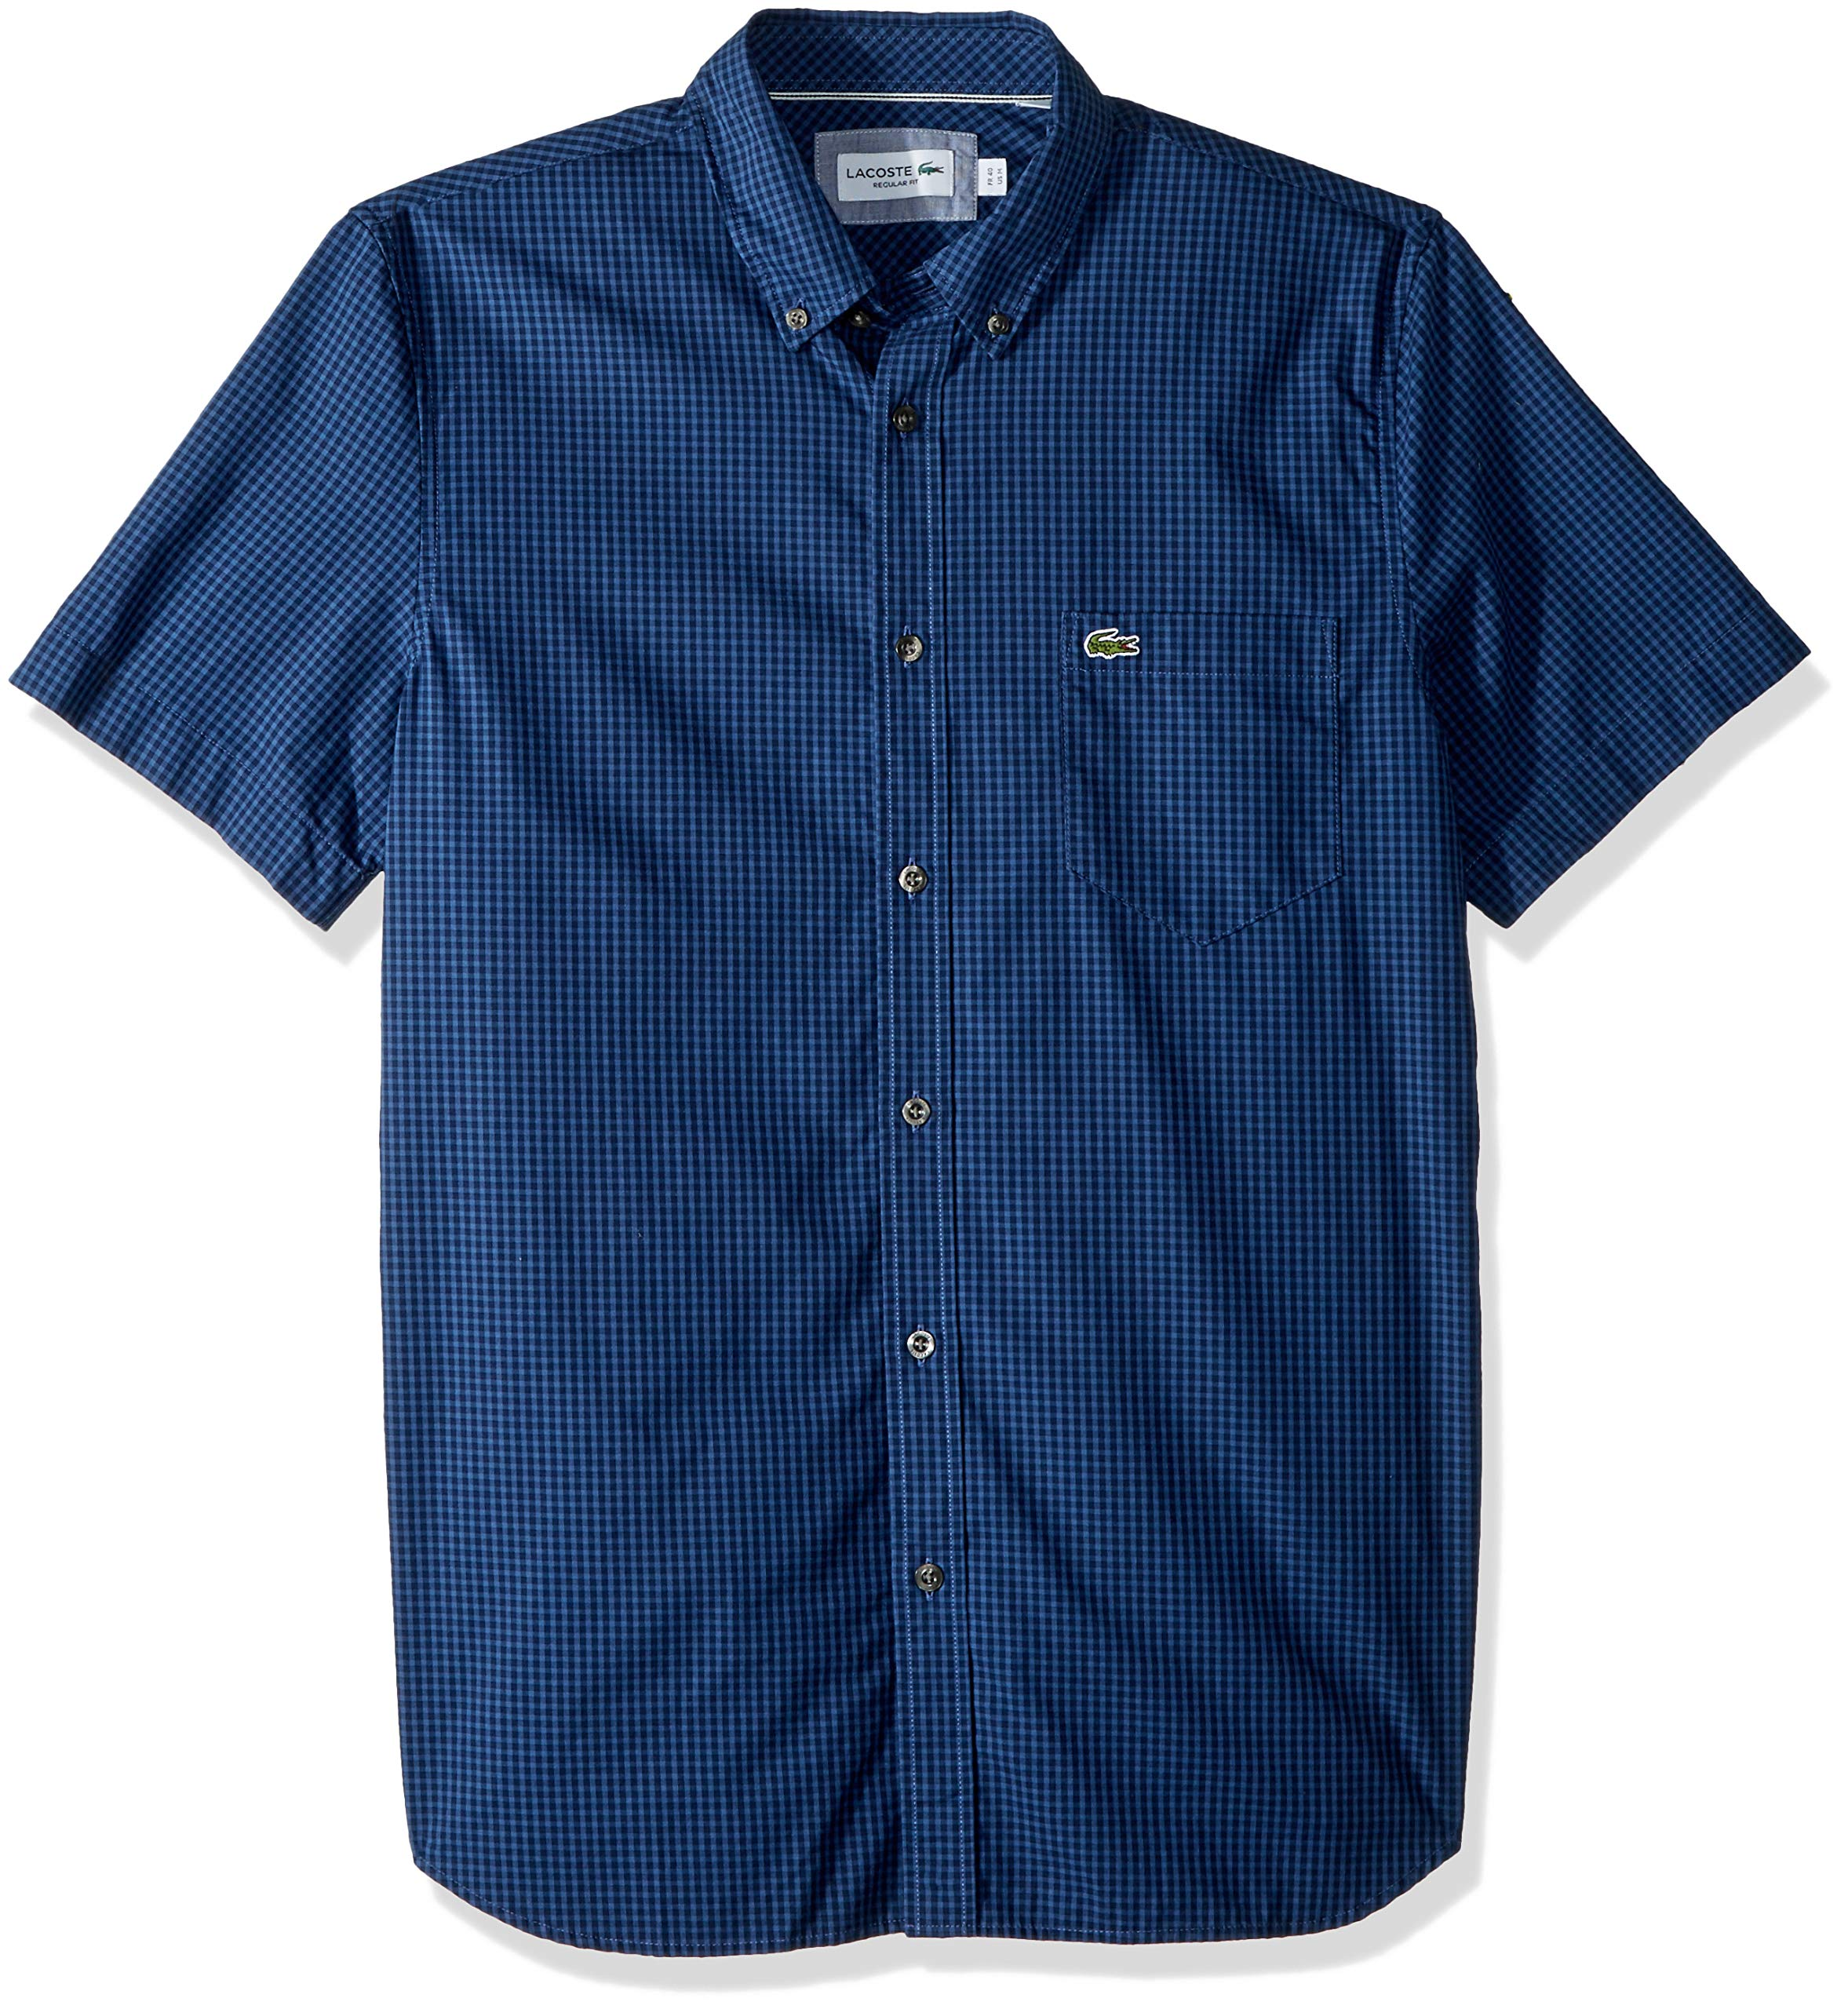 Lacoste Men's Short Sleeve REG FIT Gingham POPLIN Button Down, Navy Blue/Iodine, Large